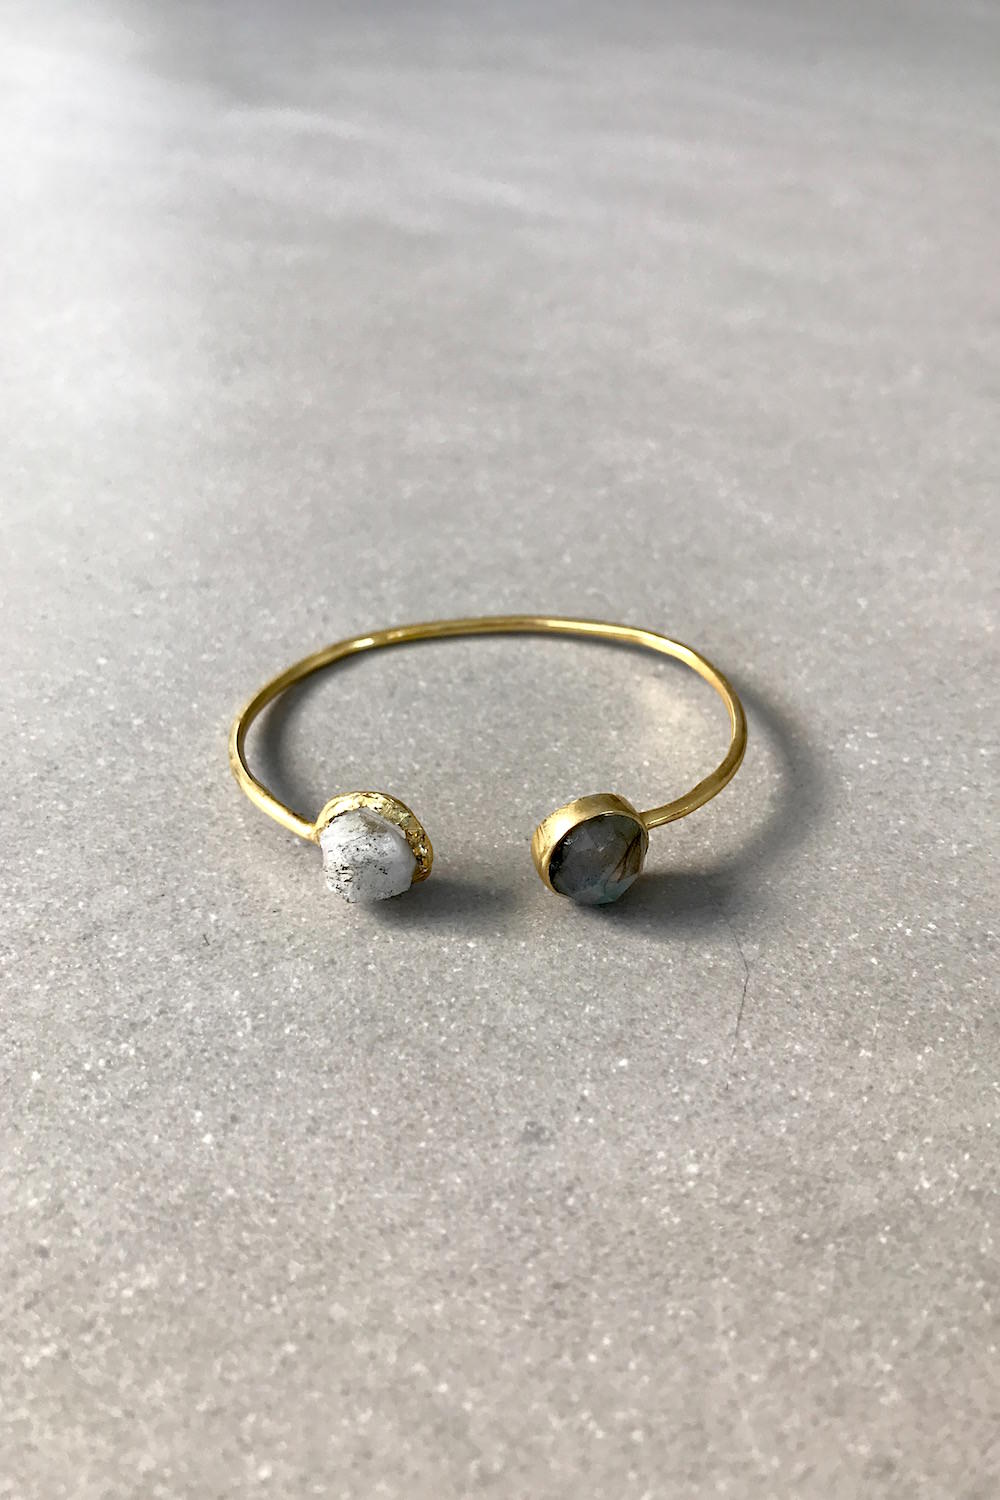 Bangle with stones